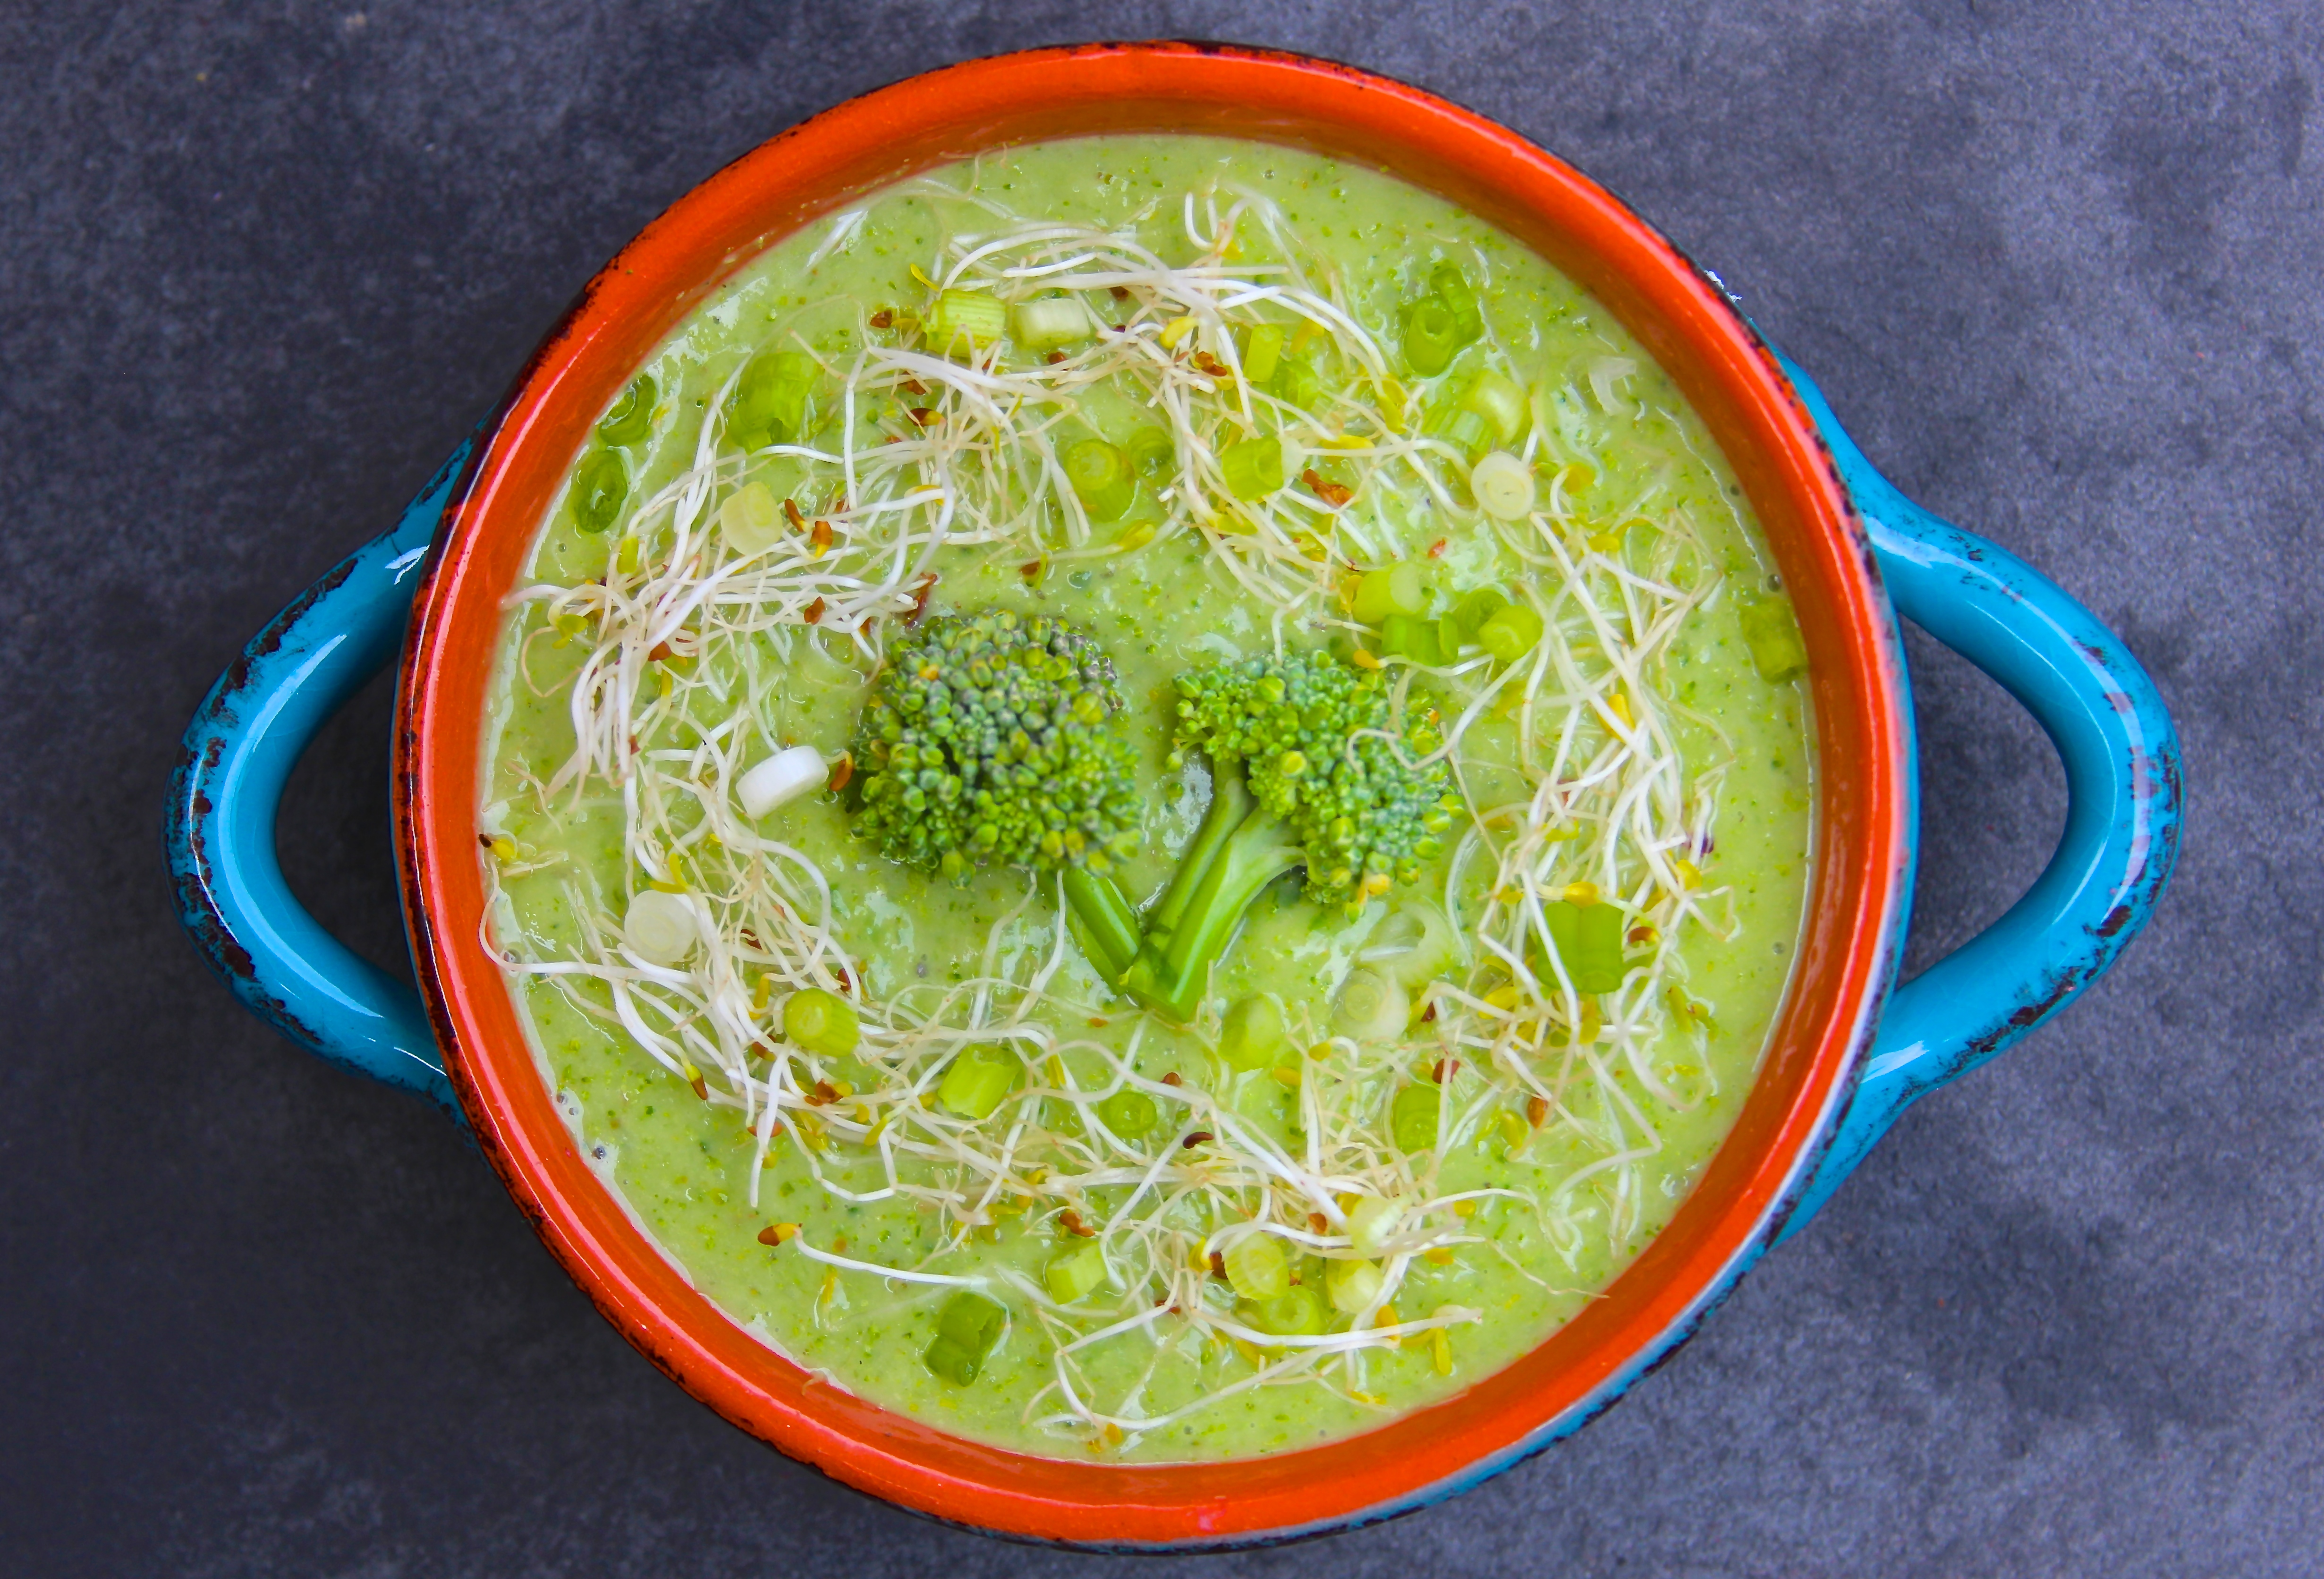 Avocado and Raw Broccoli Soup